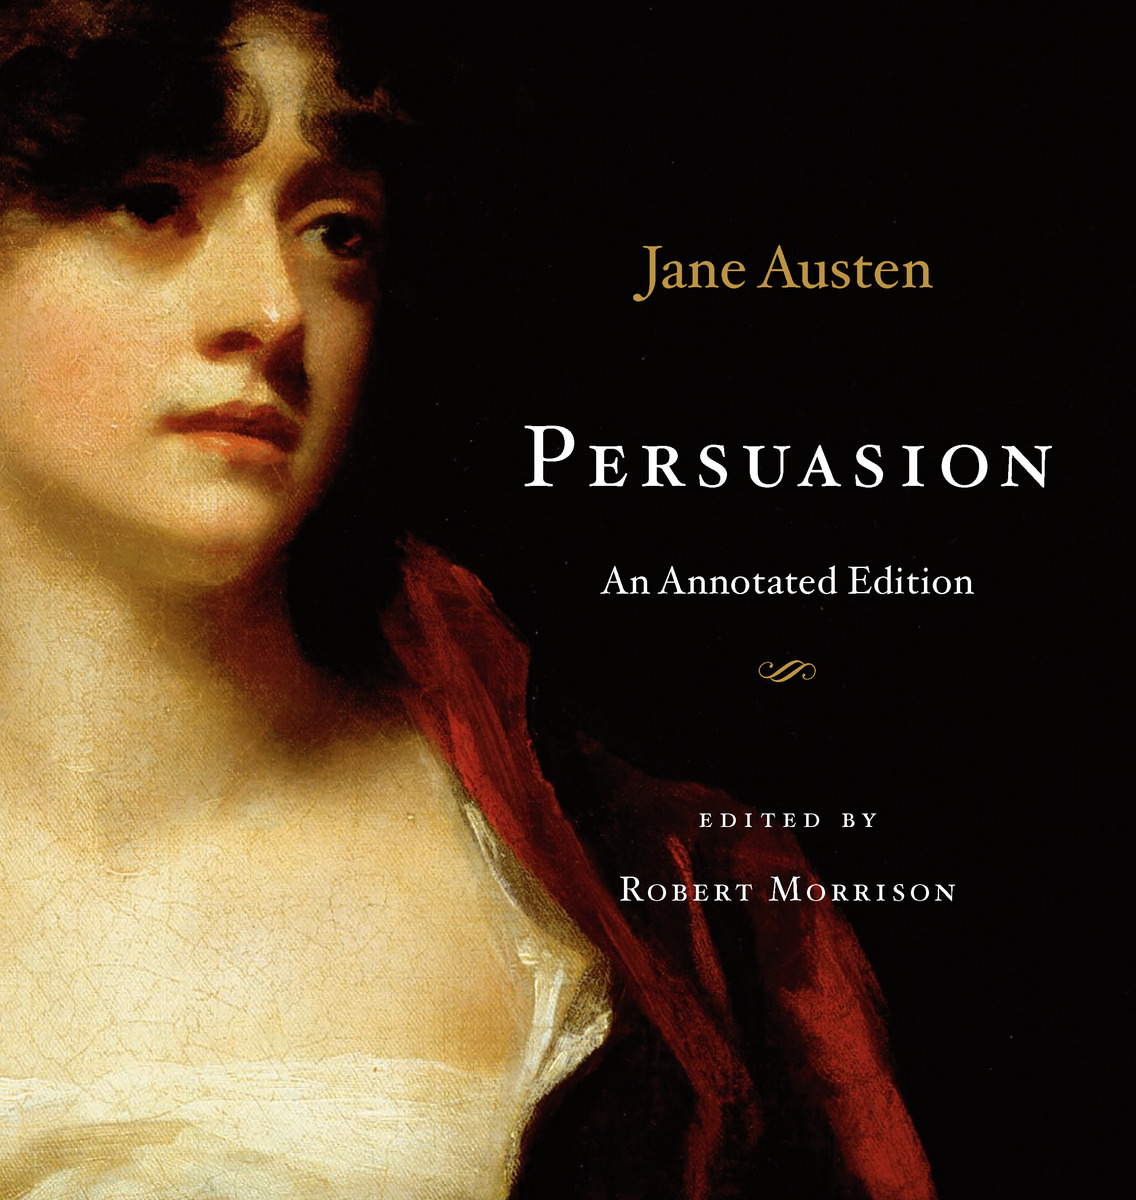 persuasion jane austen critical essays Persuasion jane austen persuasion literature essays are academic essays for citation these papers were written primarily by students and provide critical analysis of persuasion.